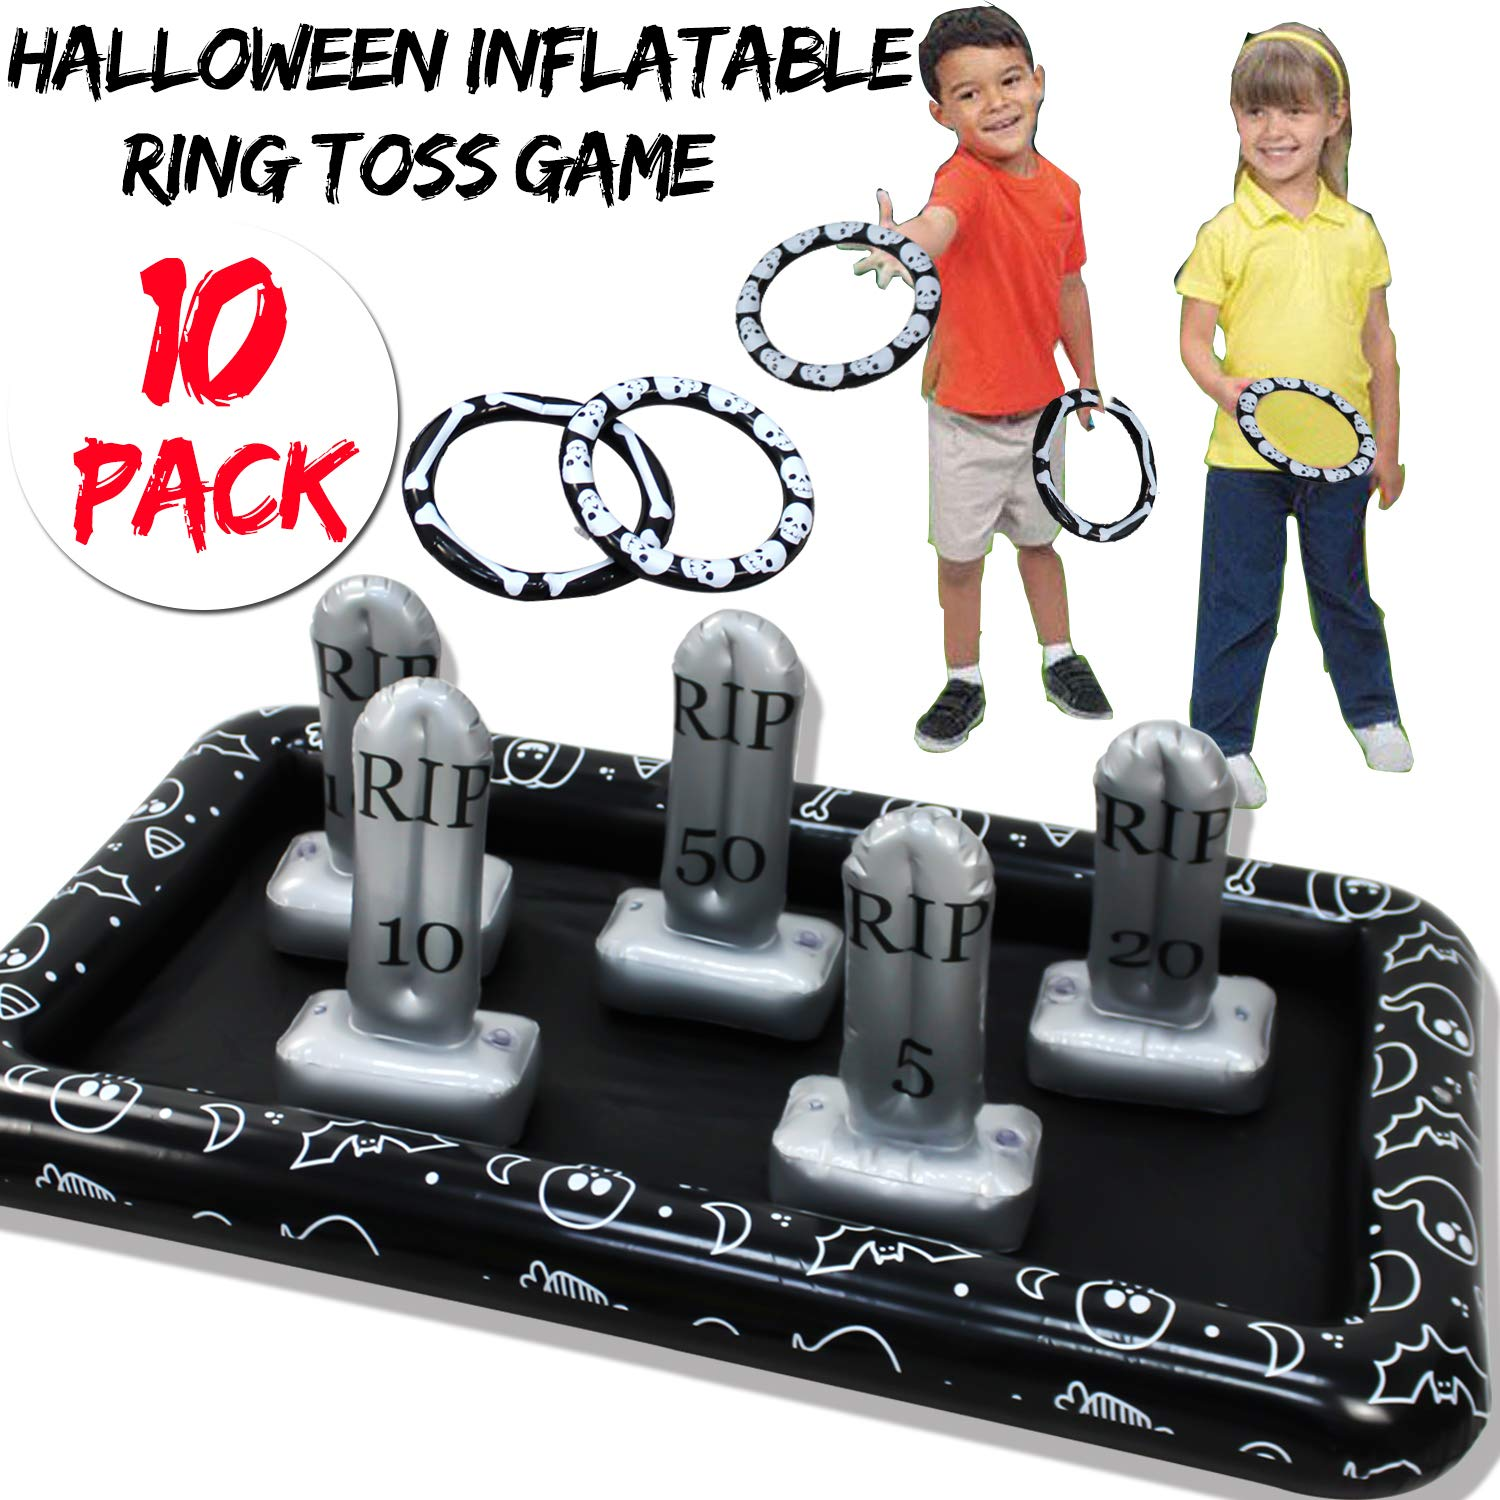 Carnival Halloween Party Ideas.Halloween Party Games For Kids Inflatable Spider Ring Toss Game Halloween Party Favors Games Supplies Outdoor Indoor Toys Creepy Spooky Game For Kids